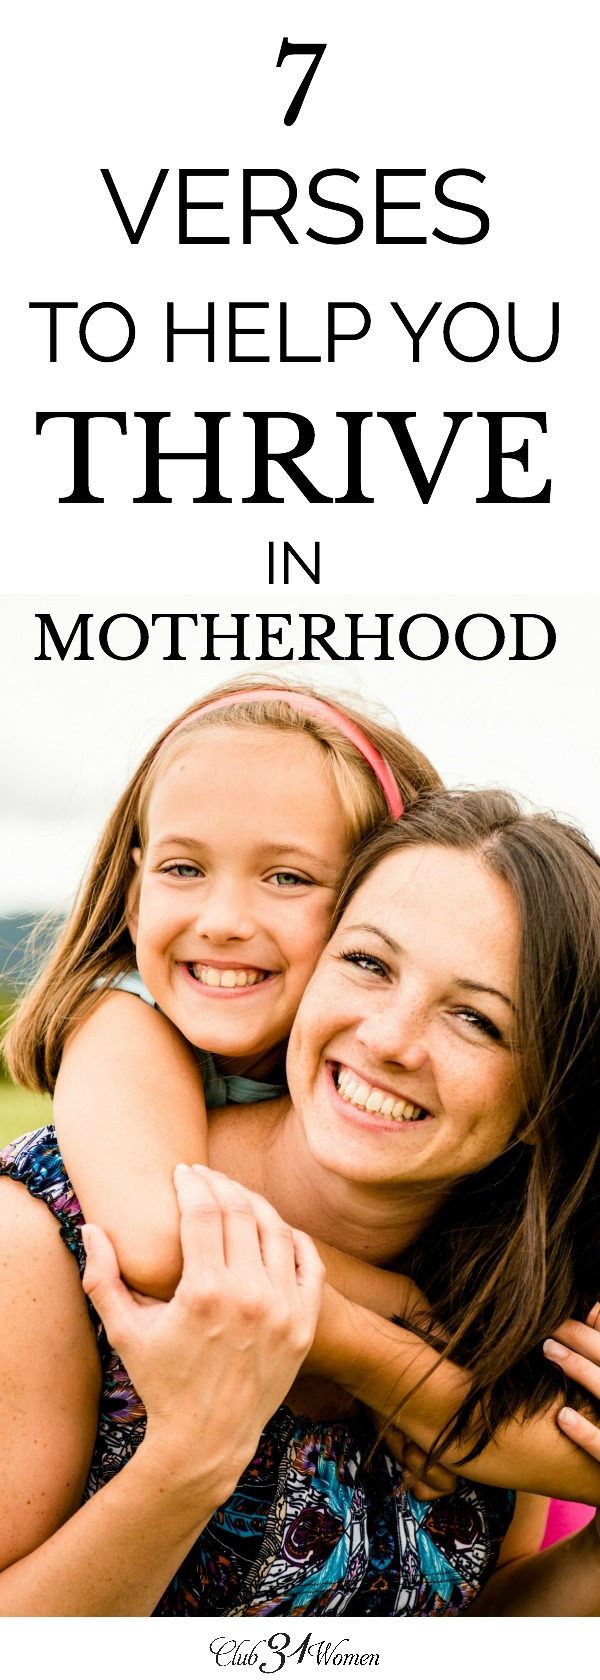 Are you struggling in motherhood? Do you feel like you can't keep it all together and finish the race well? The good news is, you don't have to. via @Club31Women